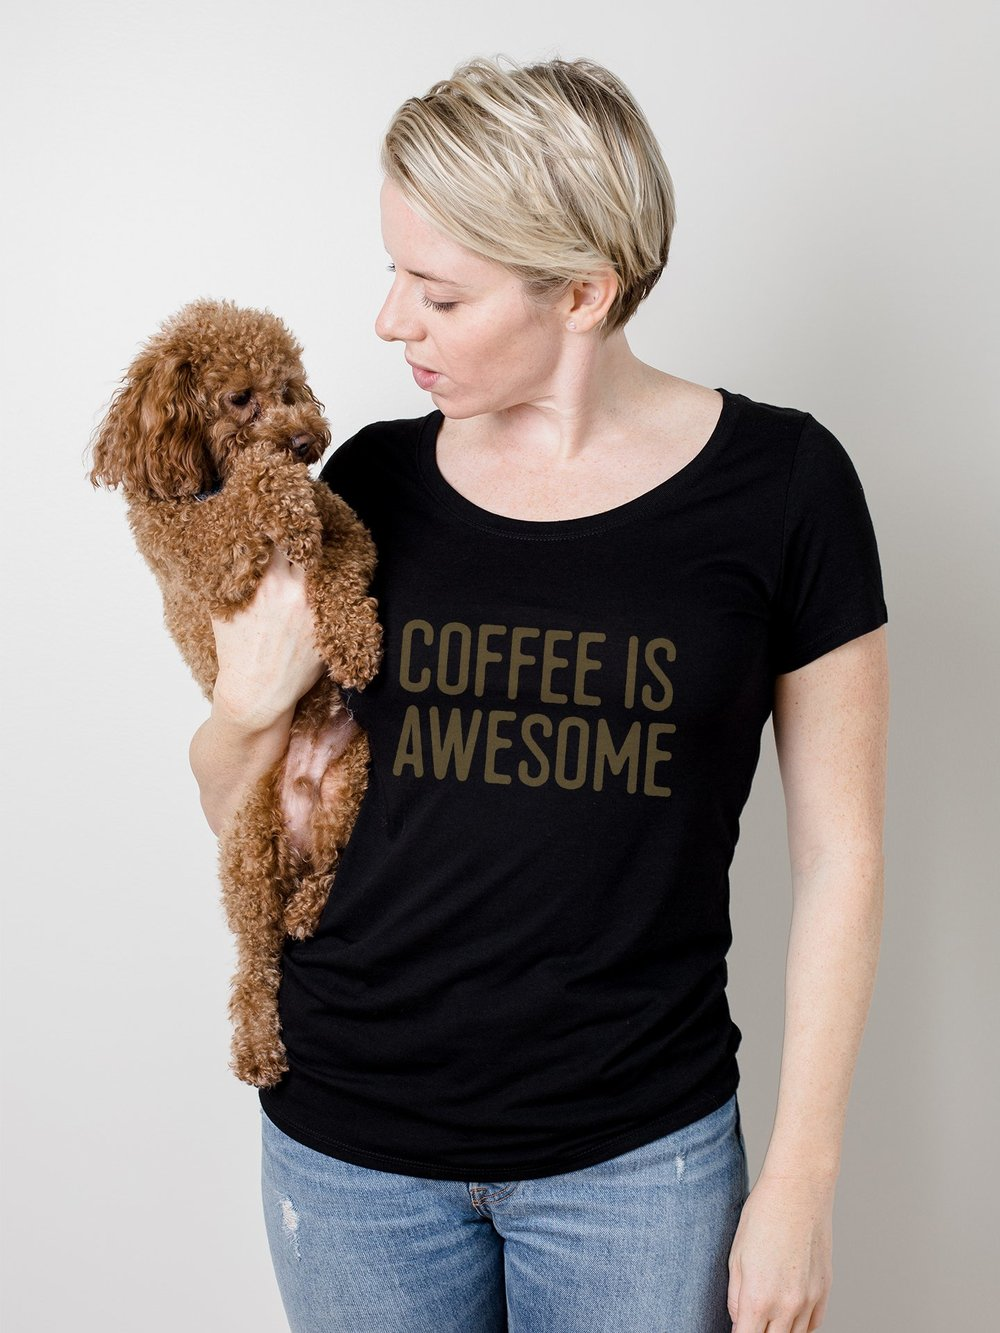 Every coffee lover needs a shirt that tells it! And gives back!